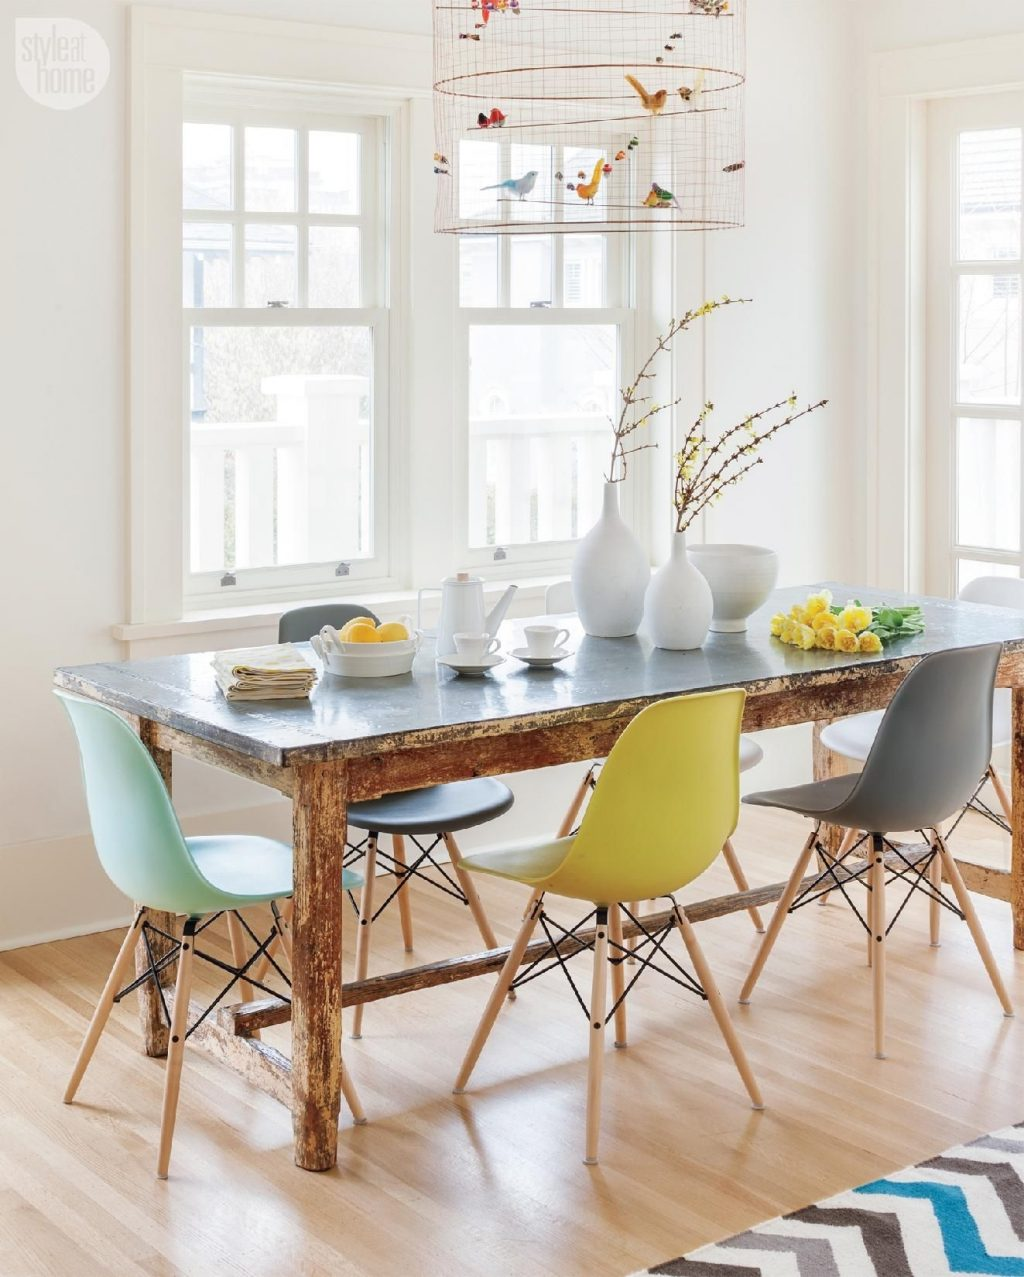 House Tour Modern Eclectic Family Home Pinterest House Tours